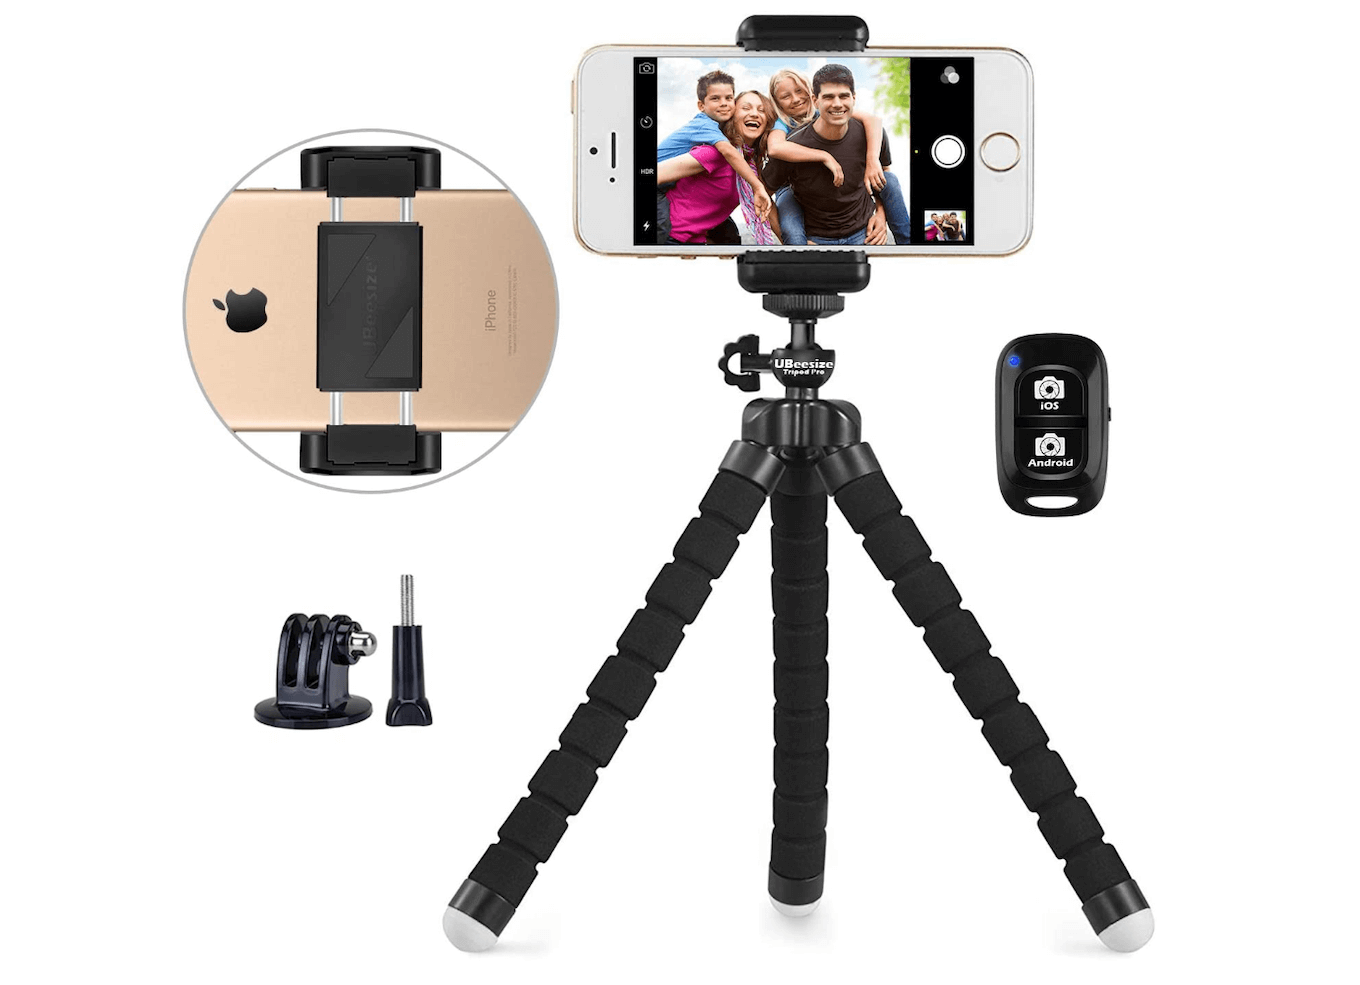 Ubeesize, one of the best iPhone camera stands